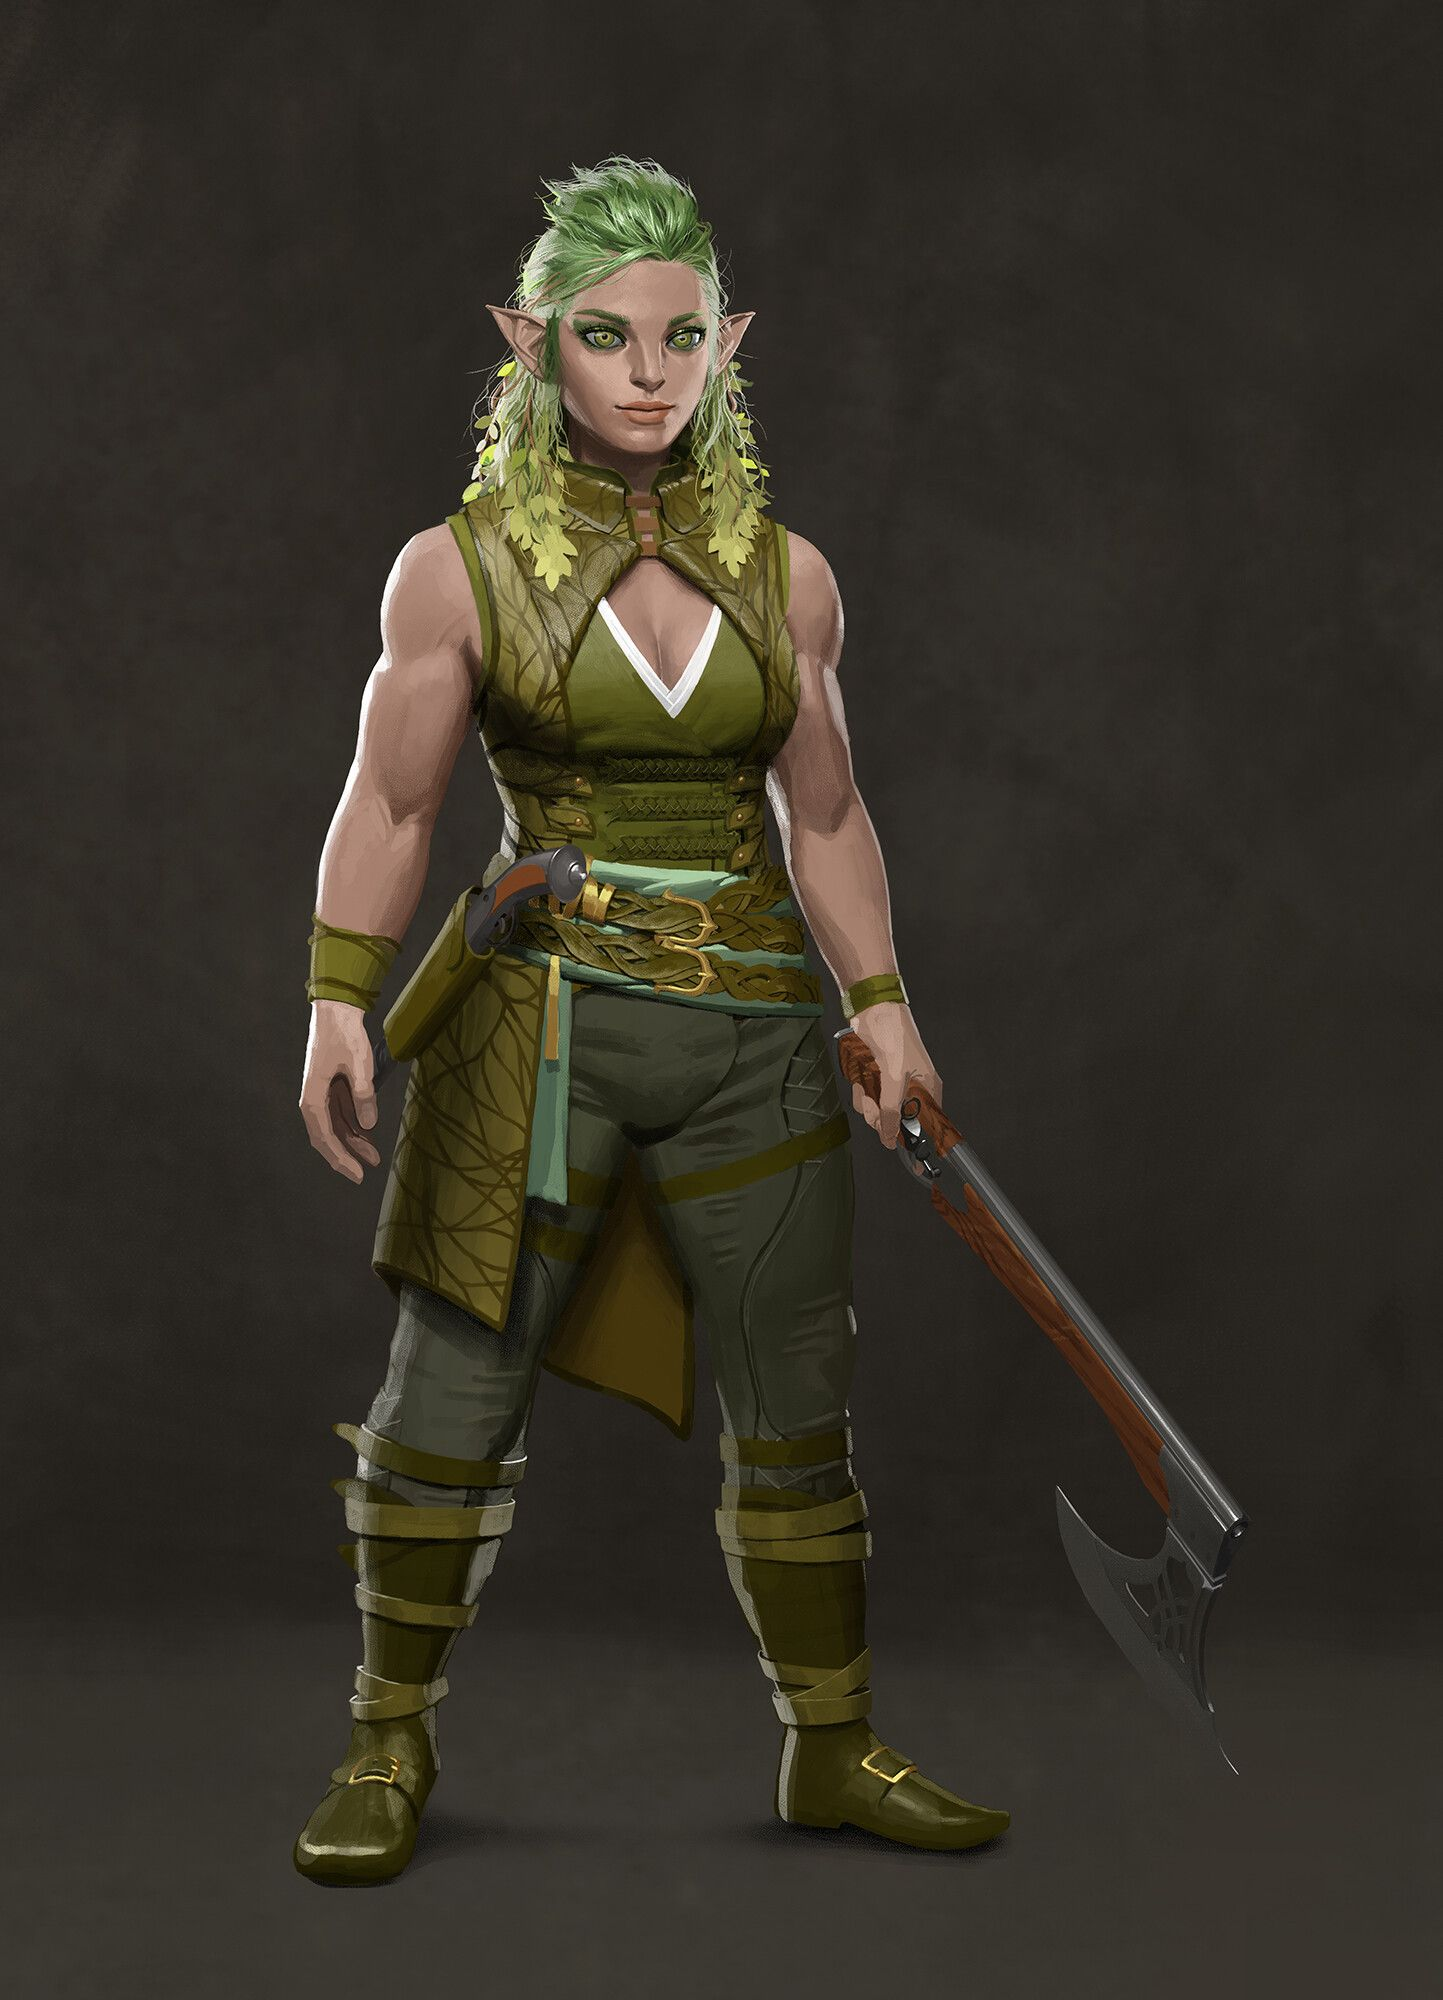 Female Muscular Elf Or Fey Or Gnome With Green Hair And Eyes And Hand Axe In 2020 Character Portraits Female Characters Fantasy Dwarf